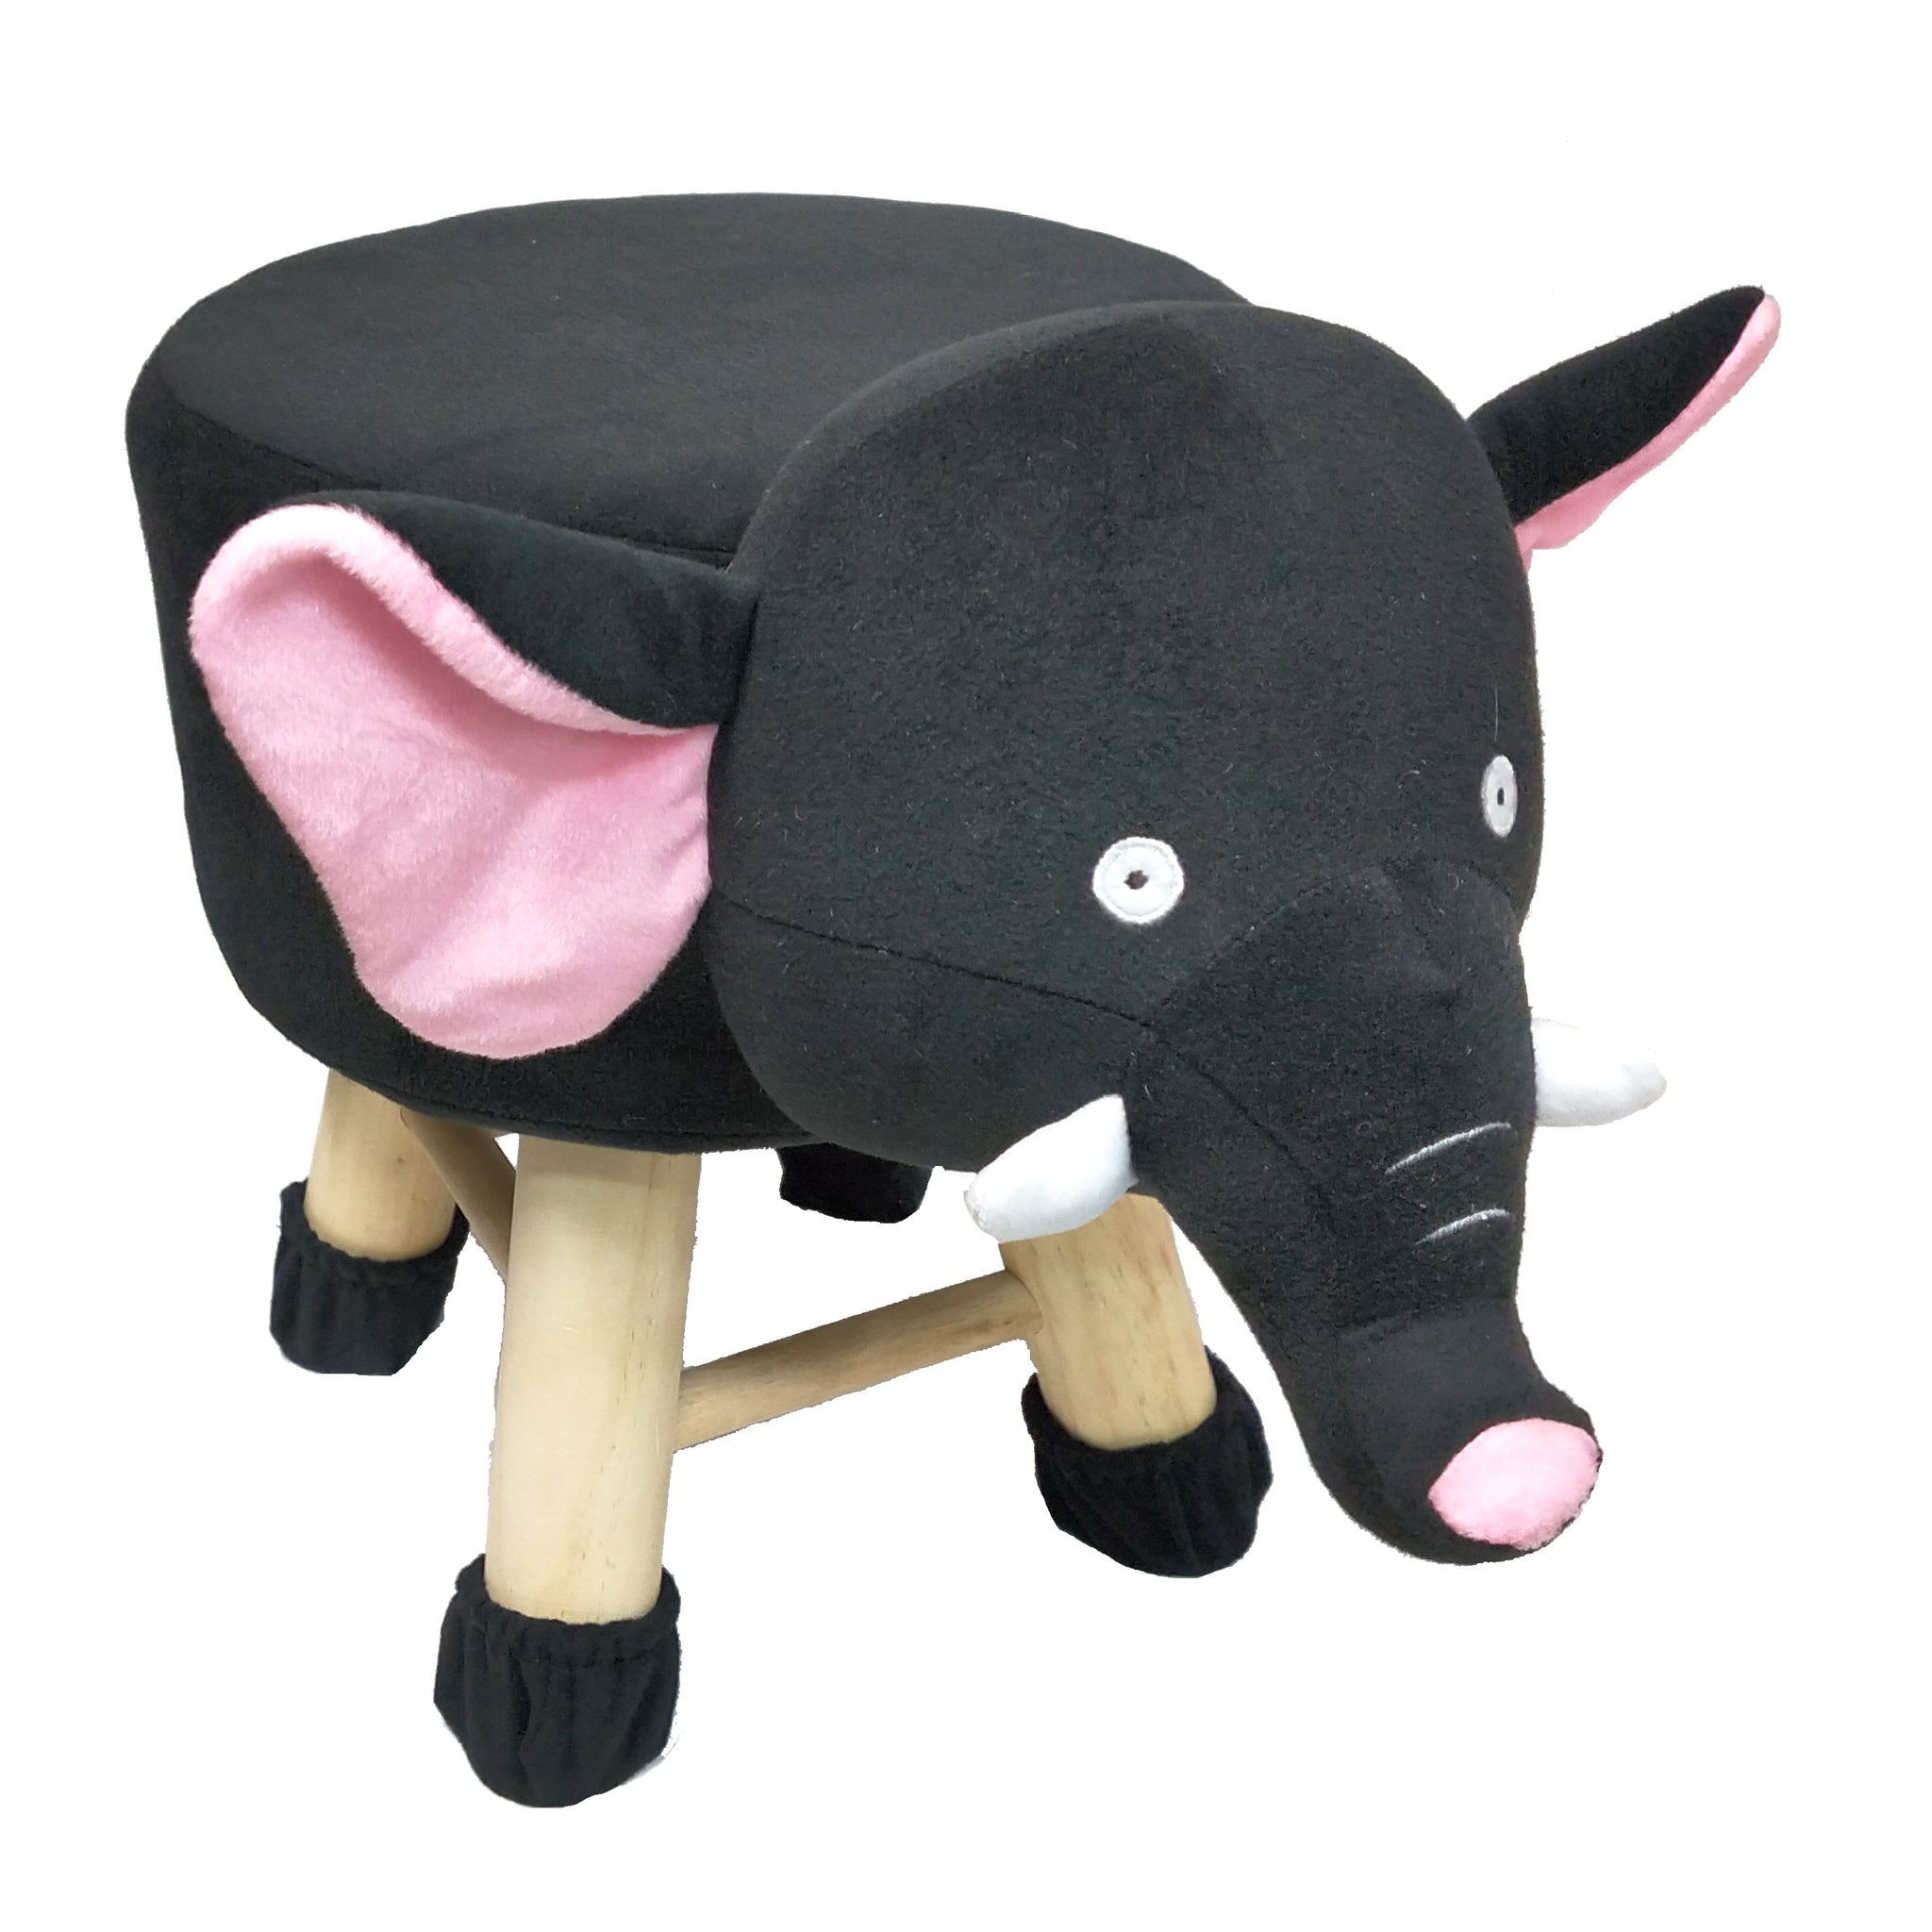 Wooden Animal Stool for Kids (Elephant)| With Removable Soft Fabric Cover | (Black) - BestP : Best Product at Best Price